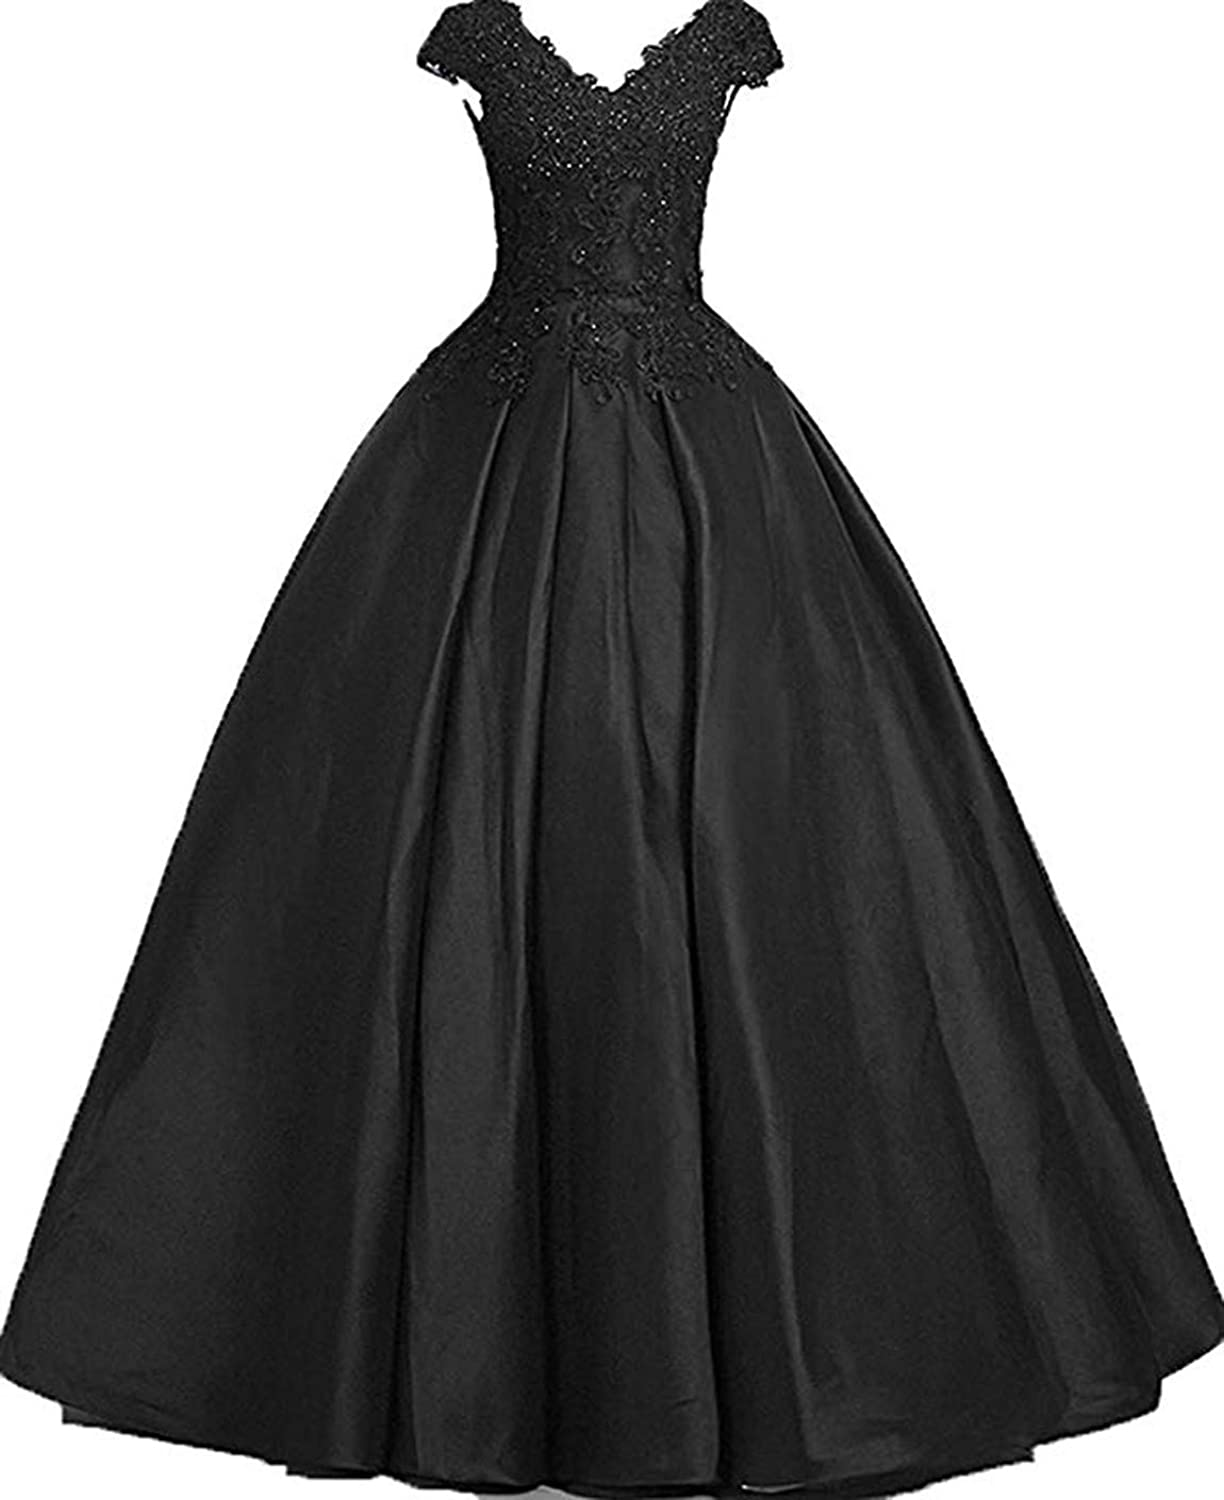 Scarisee Womens Ball Gown Vneck Lace Appliqued Prom Evening Party Dress Sleeves Formal200